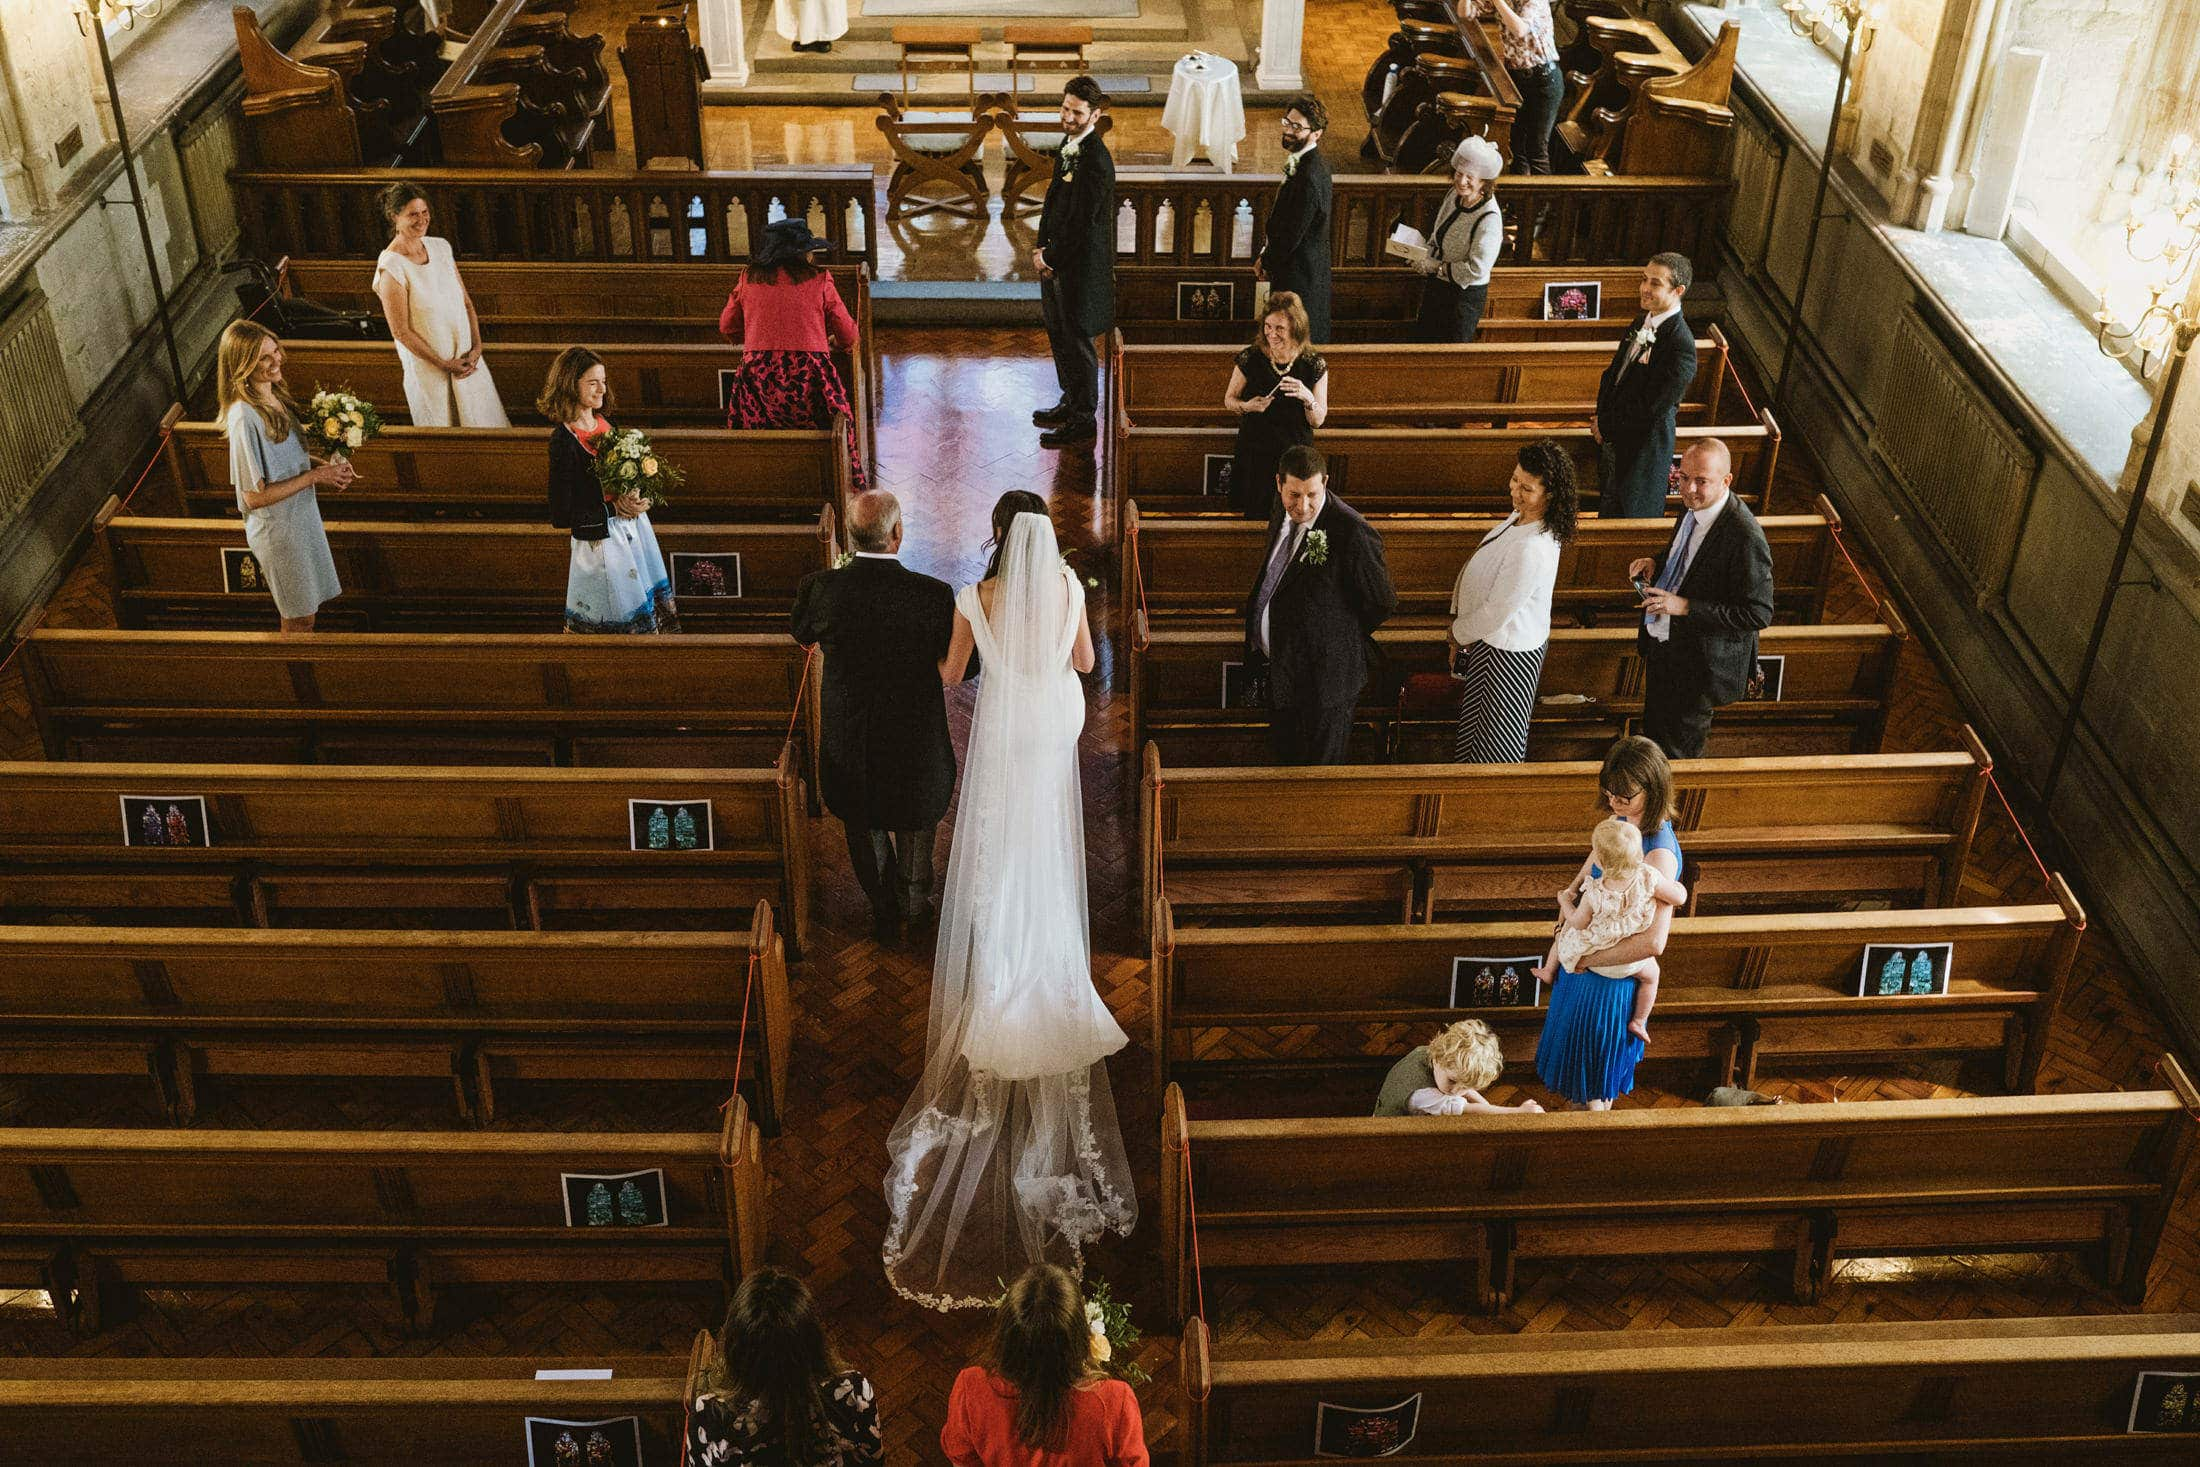 Documentary wedding photograph of an Intimate London church wedding ceremony as the bride makes her entrance alongside her father. The smiling groom watches from the front as the socially distanced guests stand around them. Captured from the church balcony